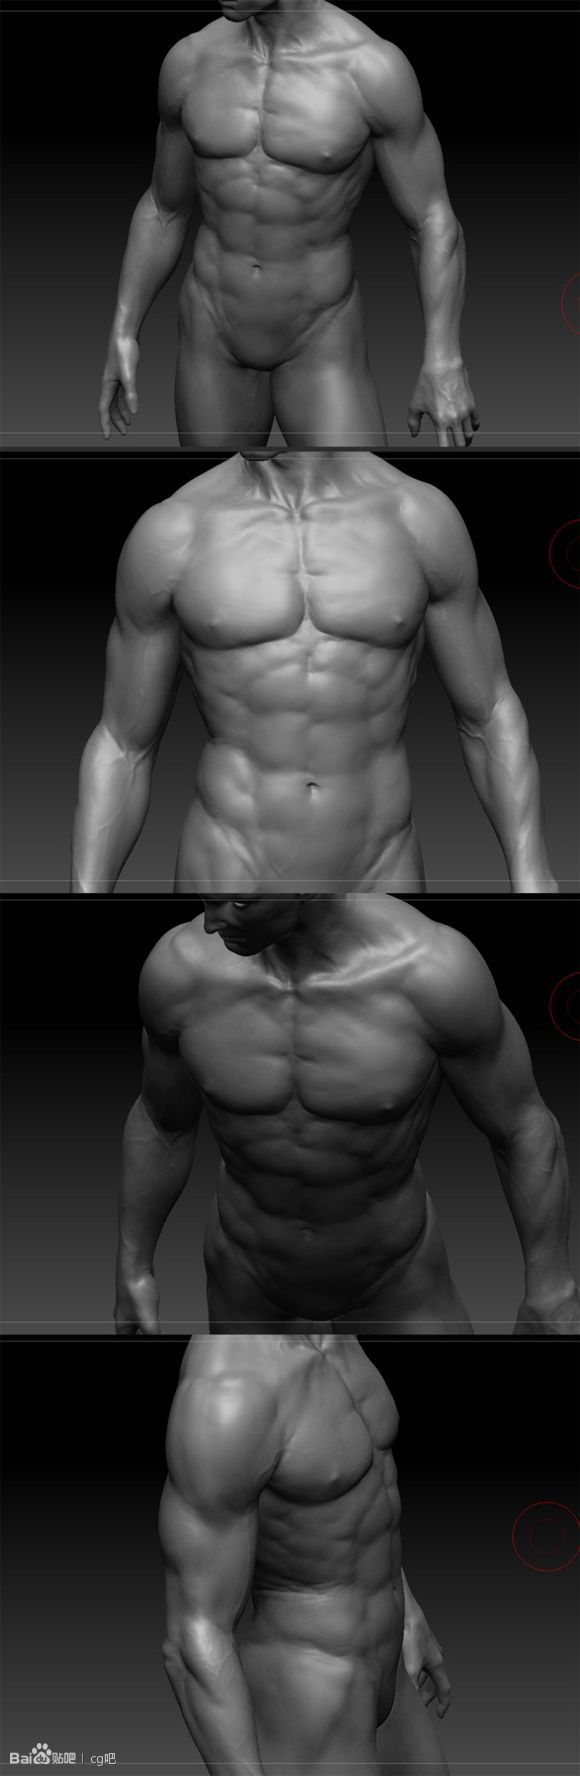 17 best images about Anatomy on Pinterest | Digital sculpting ...